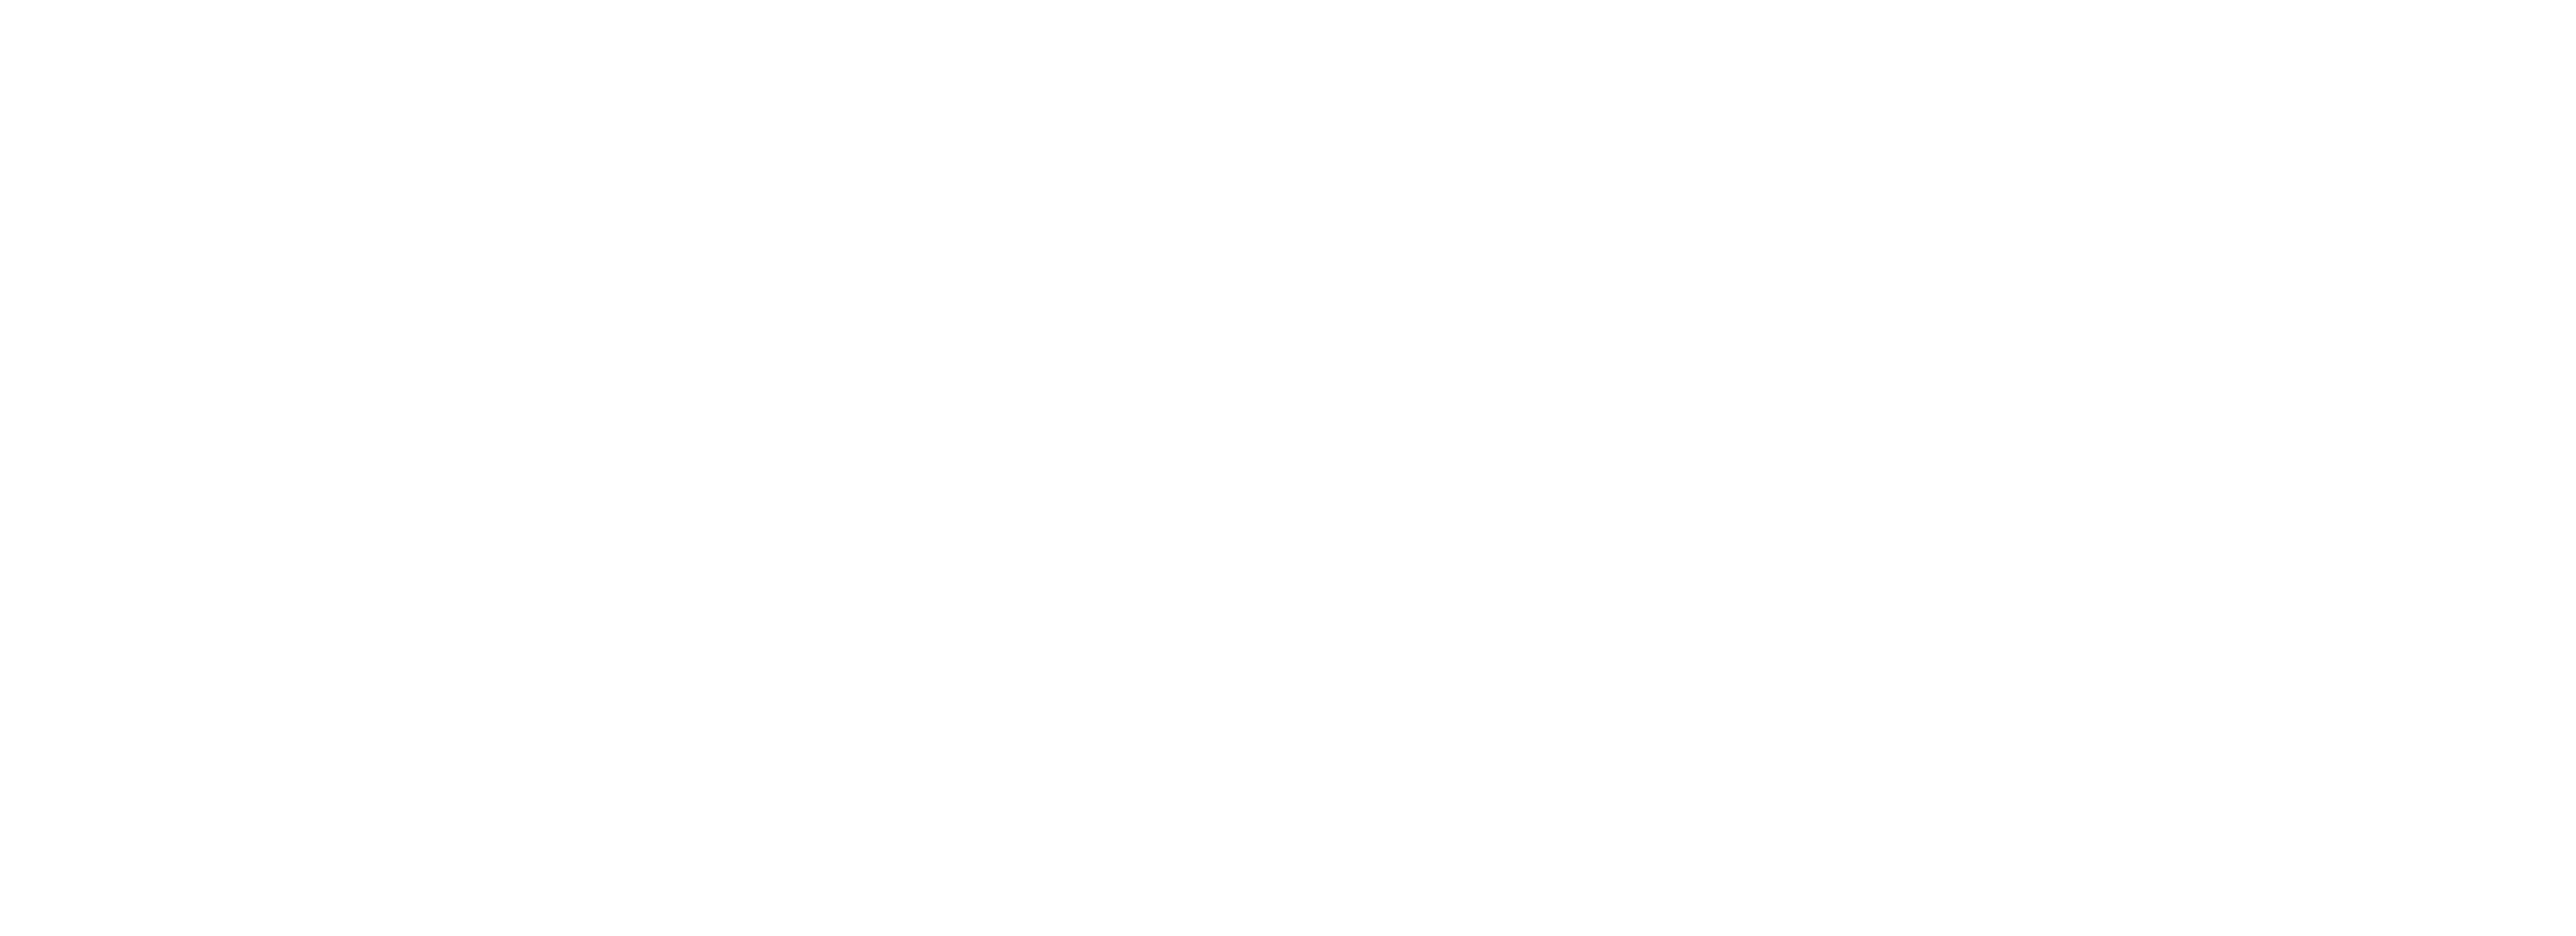 C & W's Flowers & Gifts - Flower Delivery in Roanoke Rapids, NC